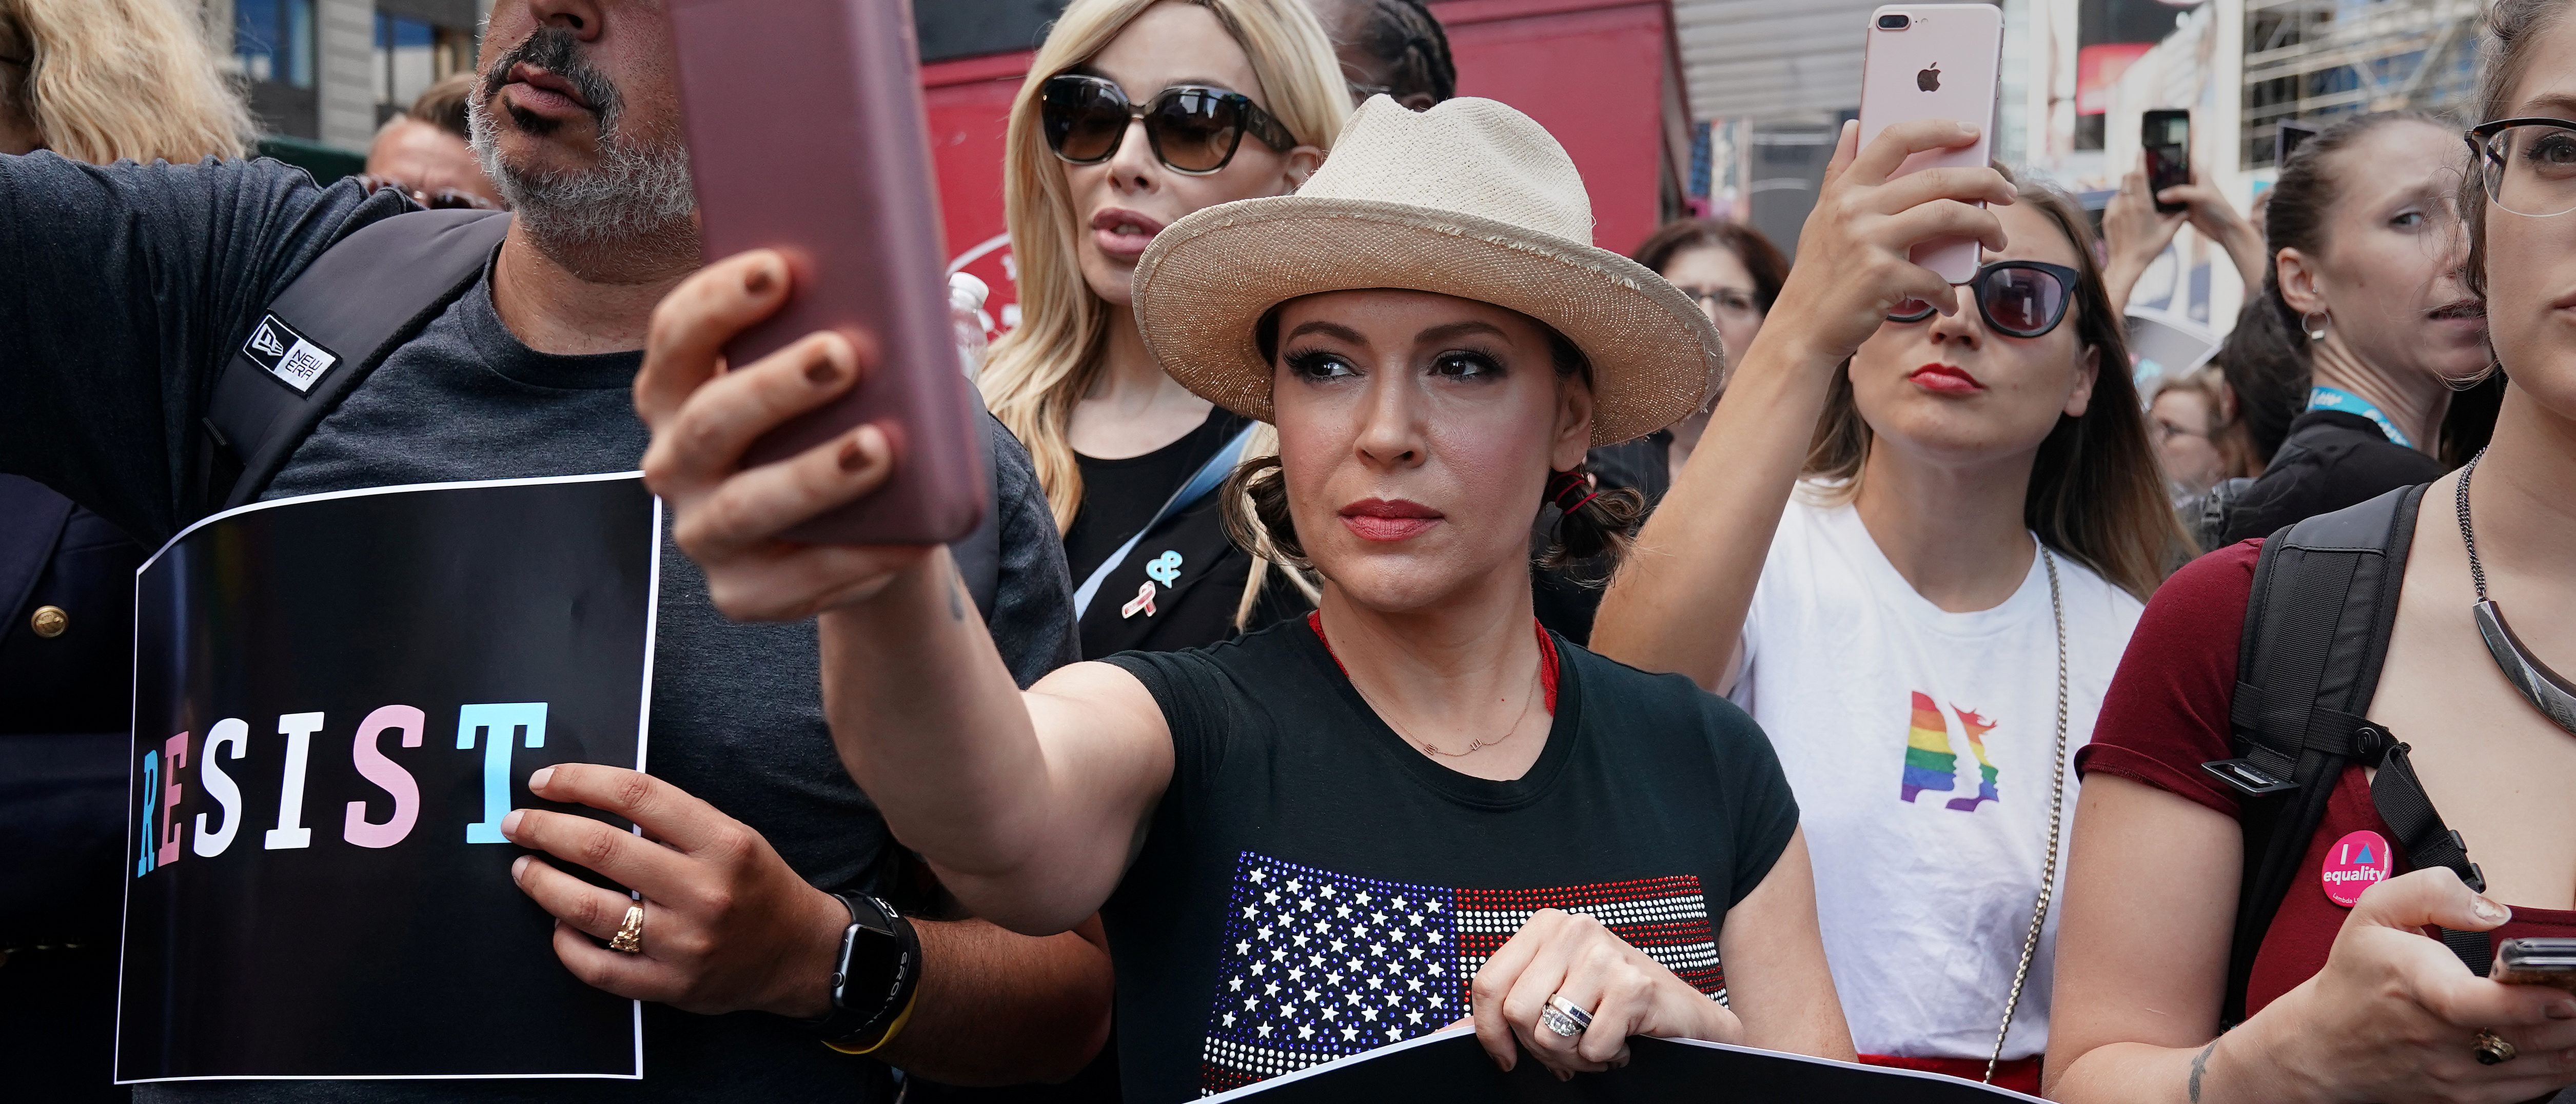 Actress Alyssa Milano attends a protest against U.S. President Donald Trump's announcement that he plans to reinstate a ban on transgender individuals from serving in any capacity in the U.S. military, in Times Square, in New York City, New York, U.S., July 26, 2017. REUTERS/Carlo Allegri - RC1BA409A7E0